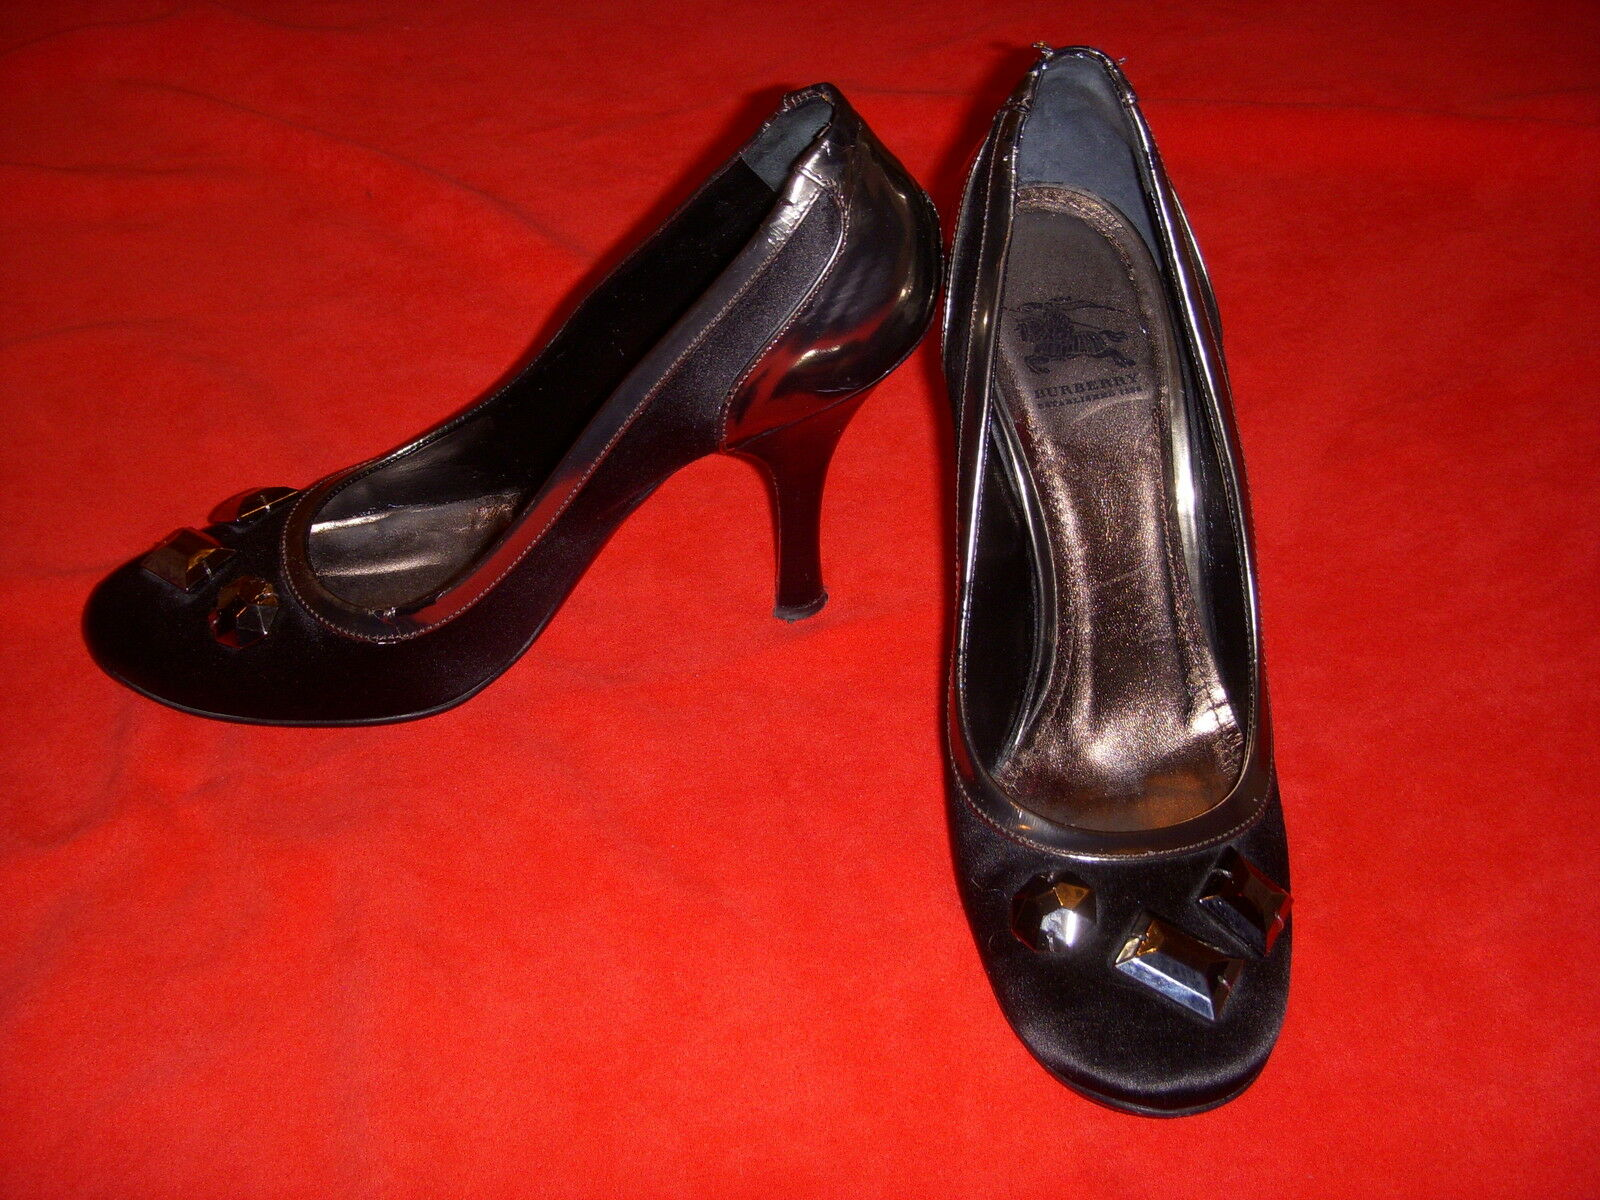 BURBERRY Jeweled Black Satin & Gunmetal Leather shoes Pumps Heels